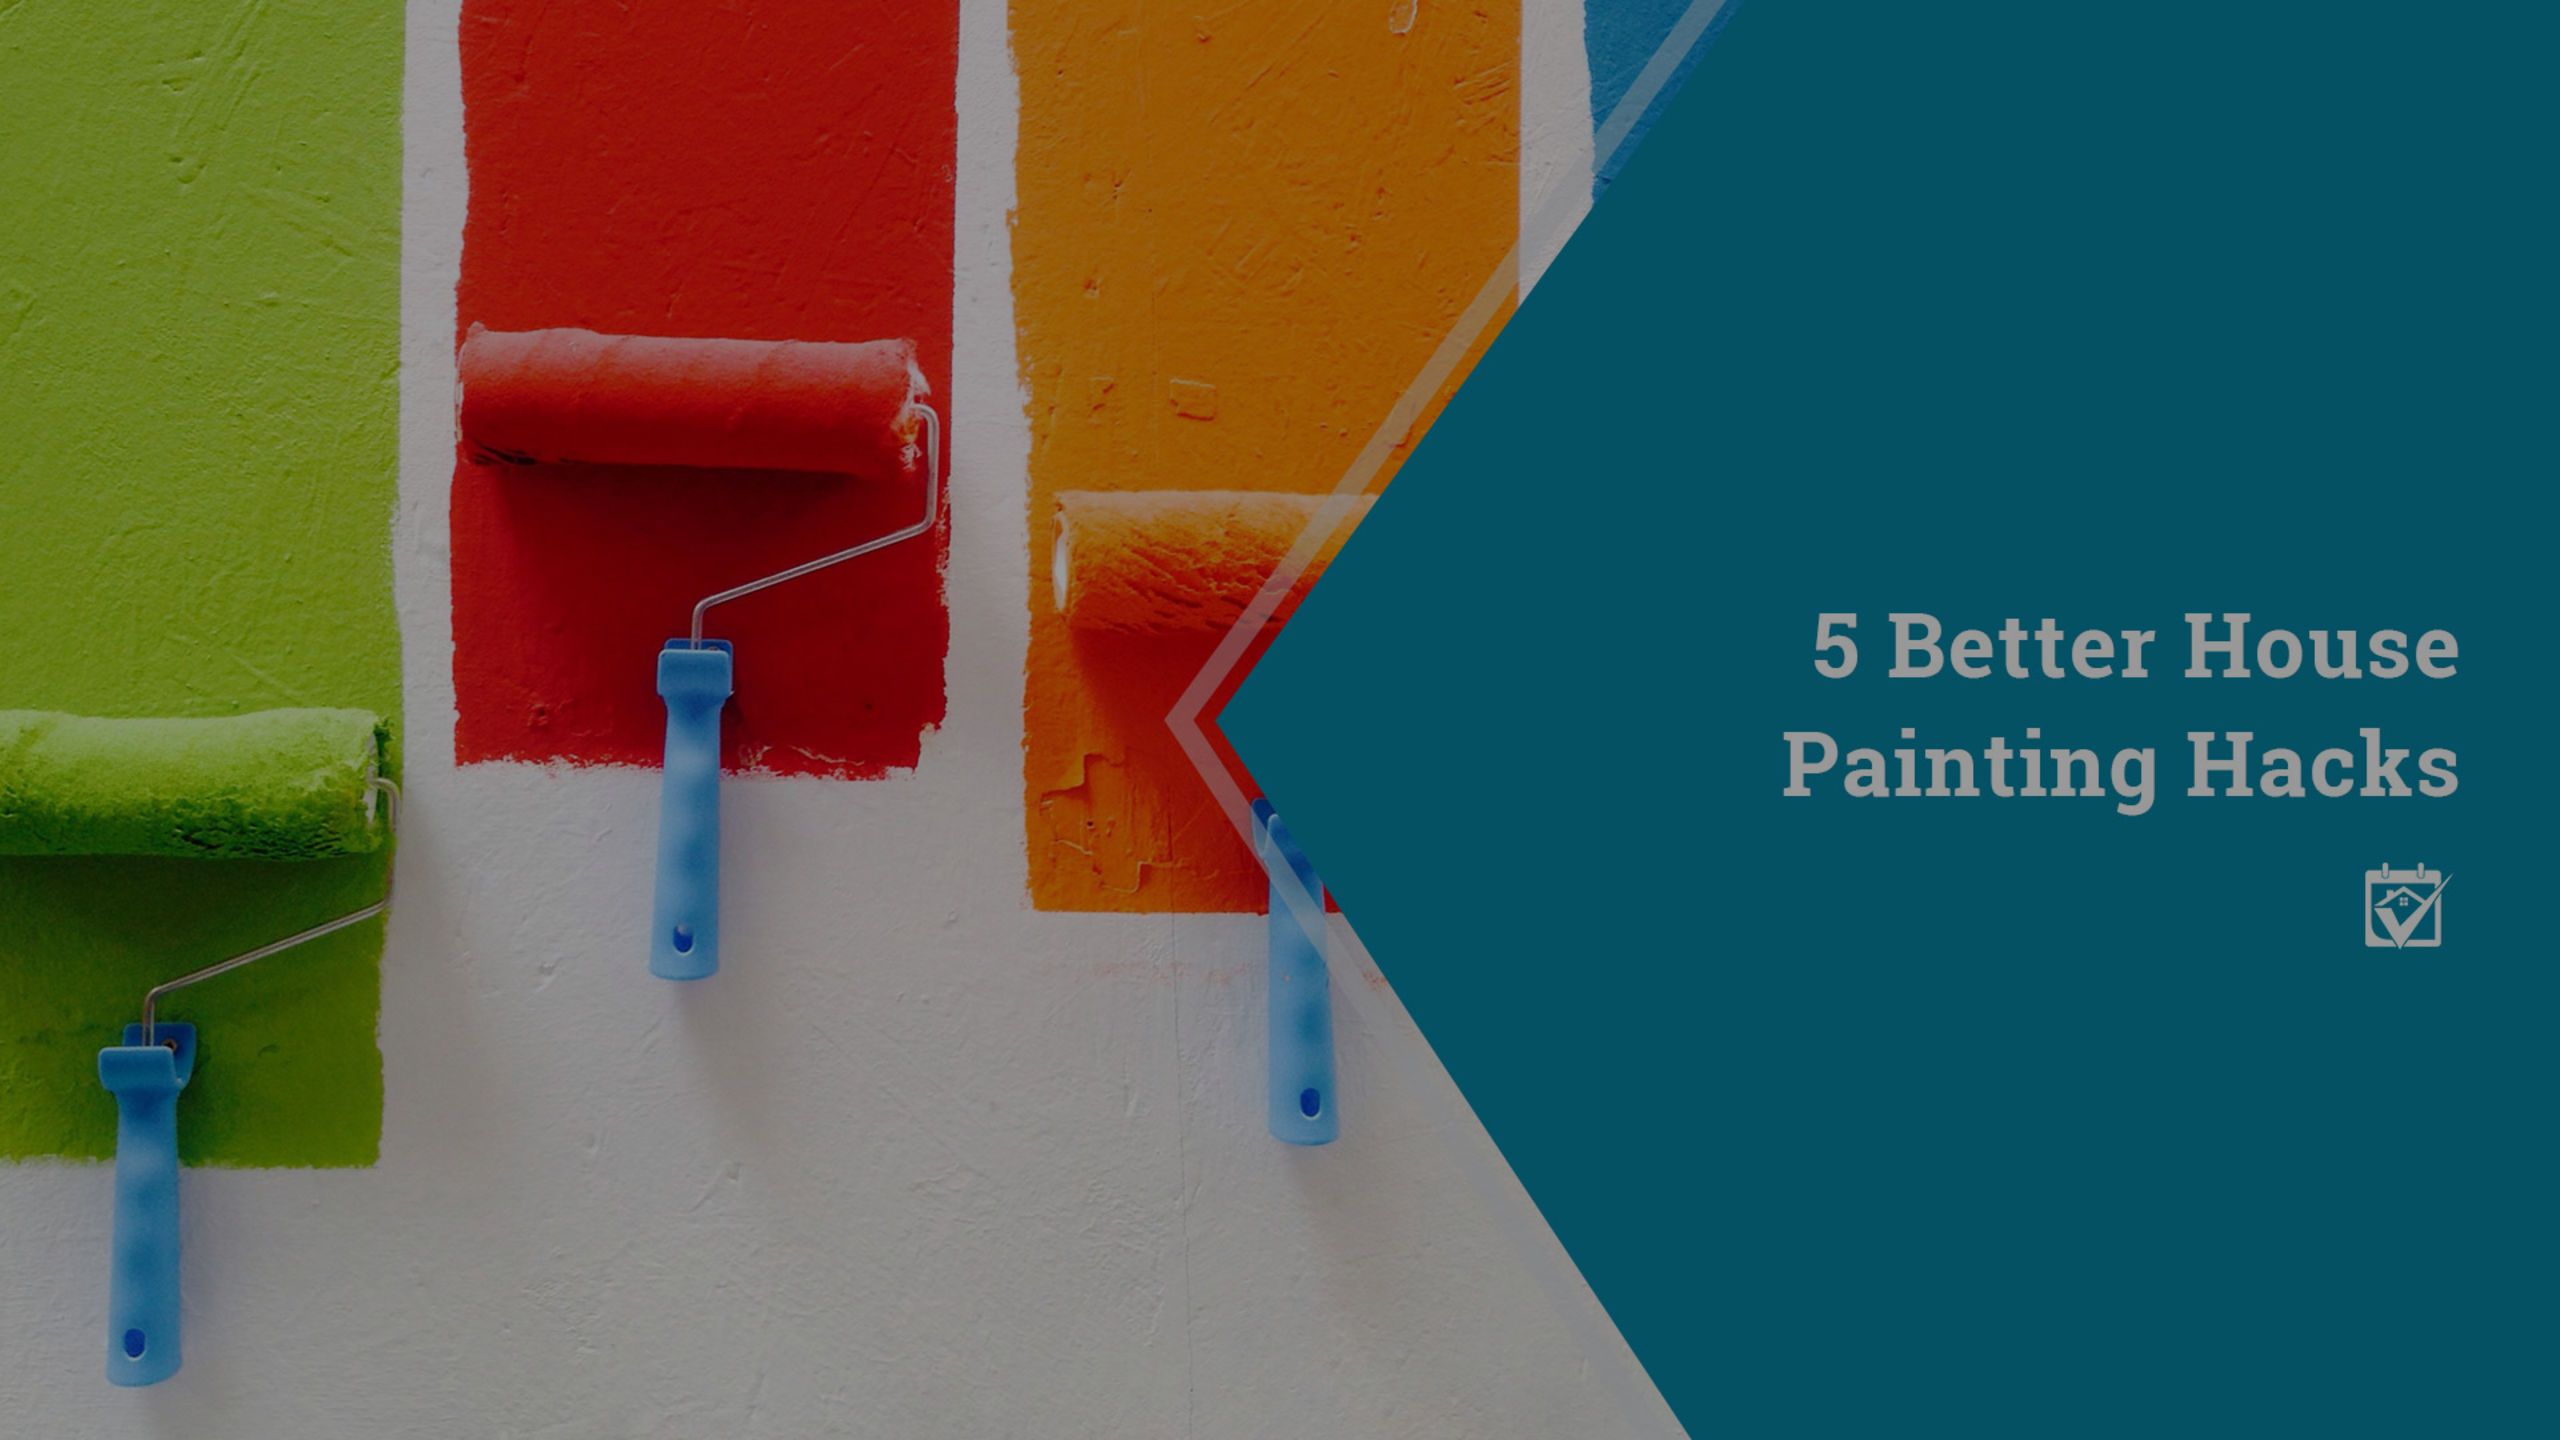 Five Better House Painting Hacks